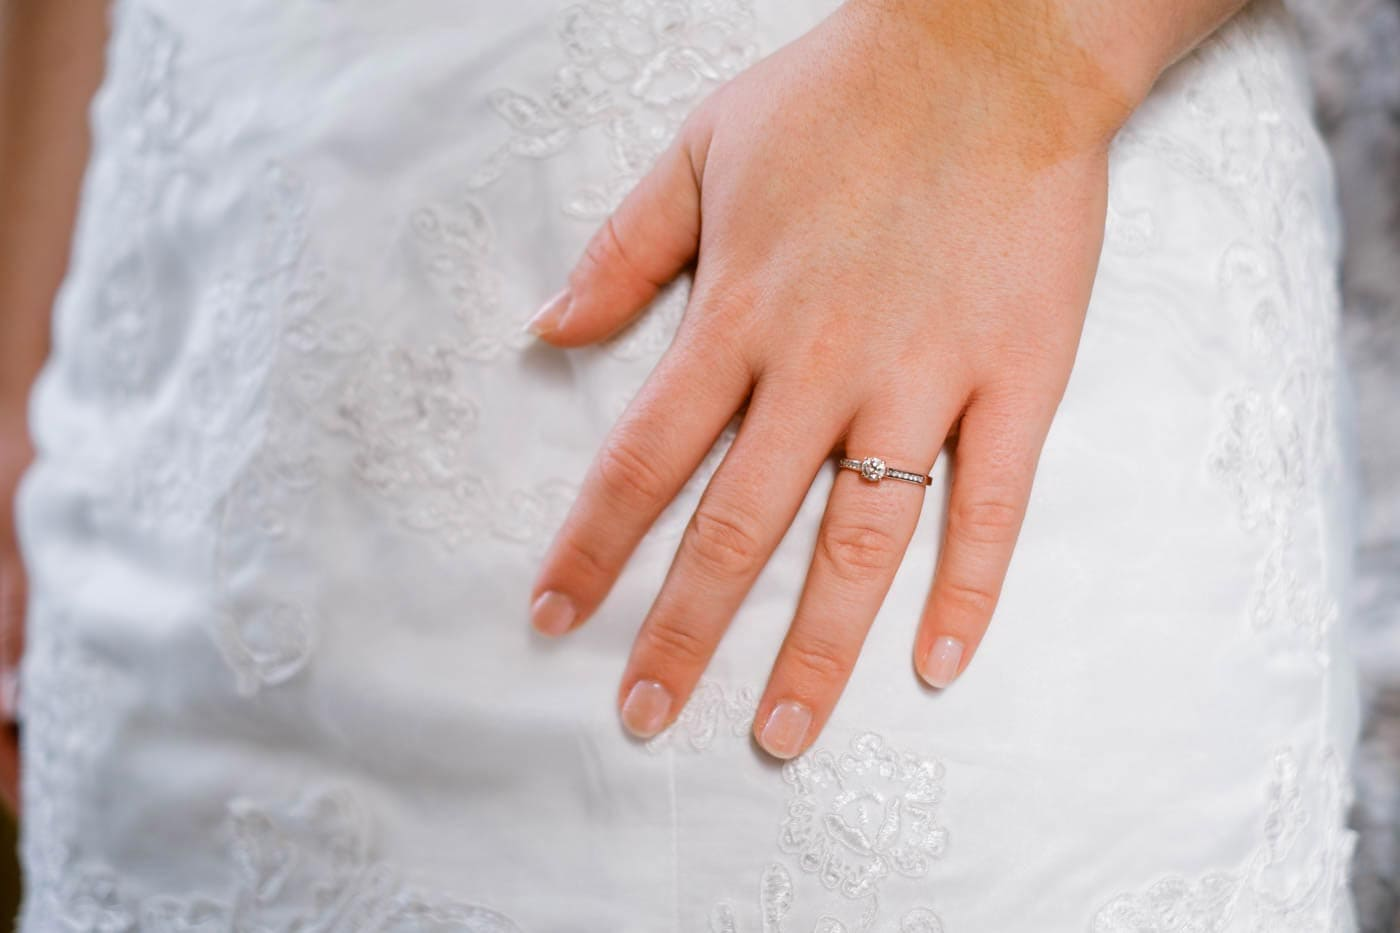 Close-up of brides's engagement ring